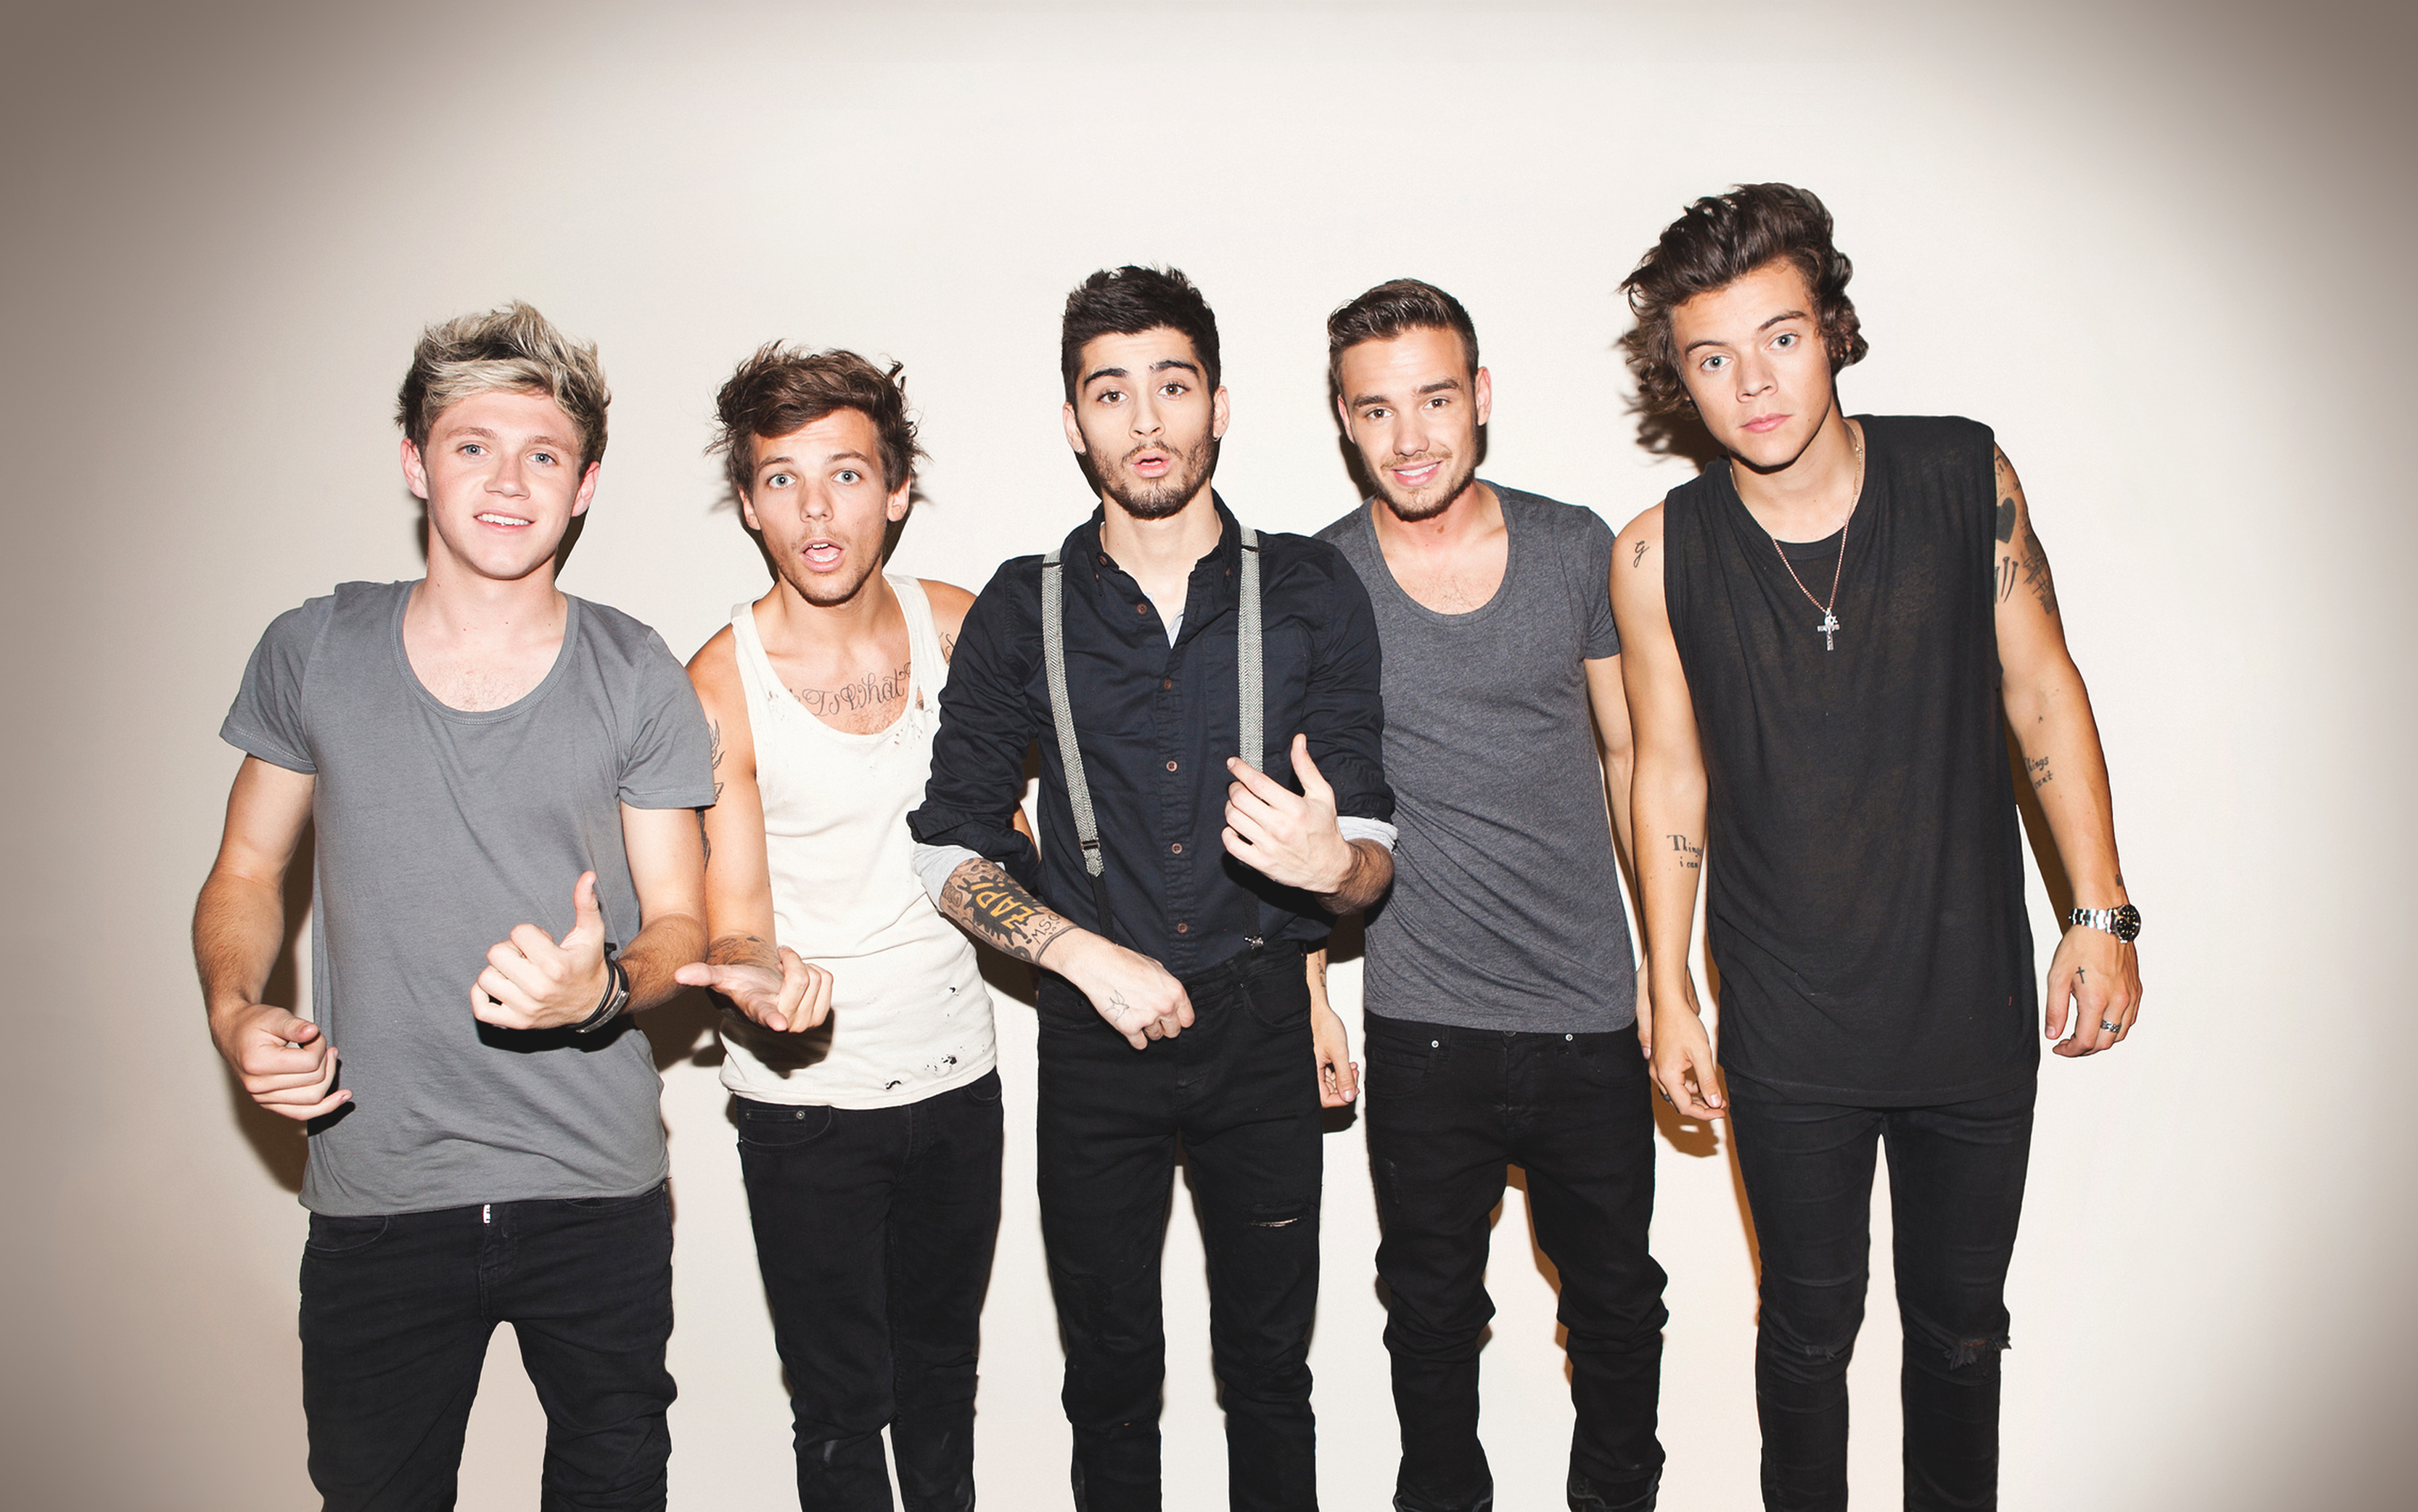 #39313807 One Direction Wallpaper for PC, Mobile